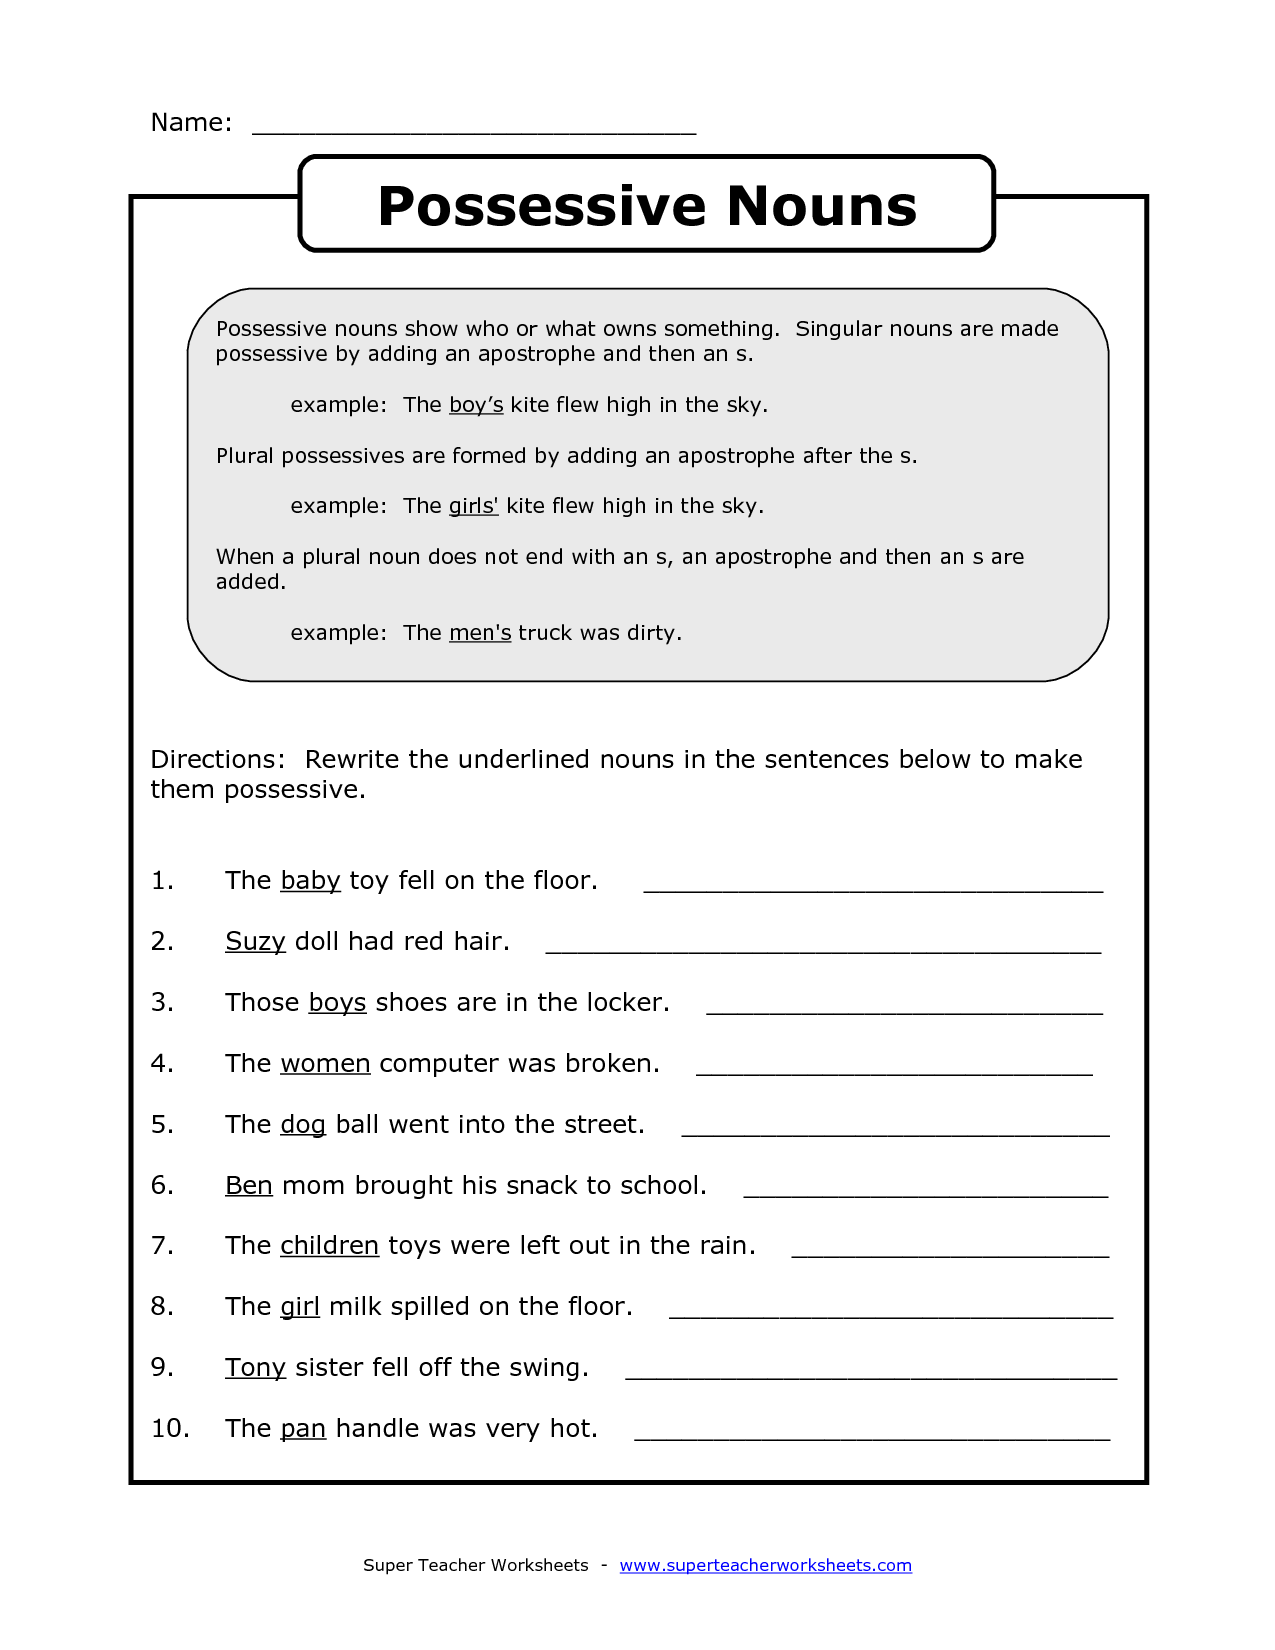 possessive noun worksheets for 3rd grade possessive apostrophes